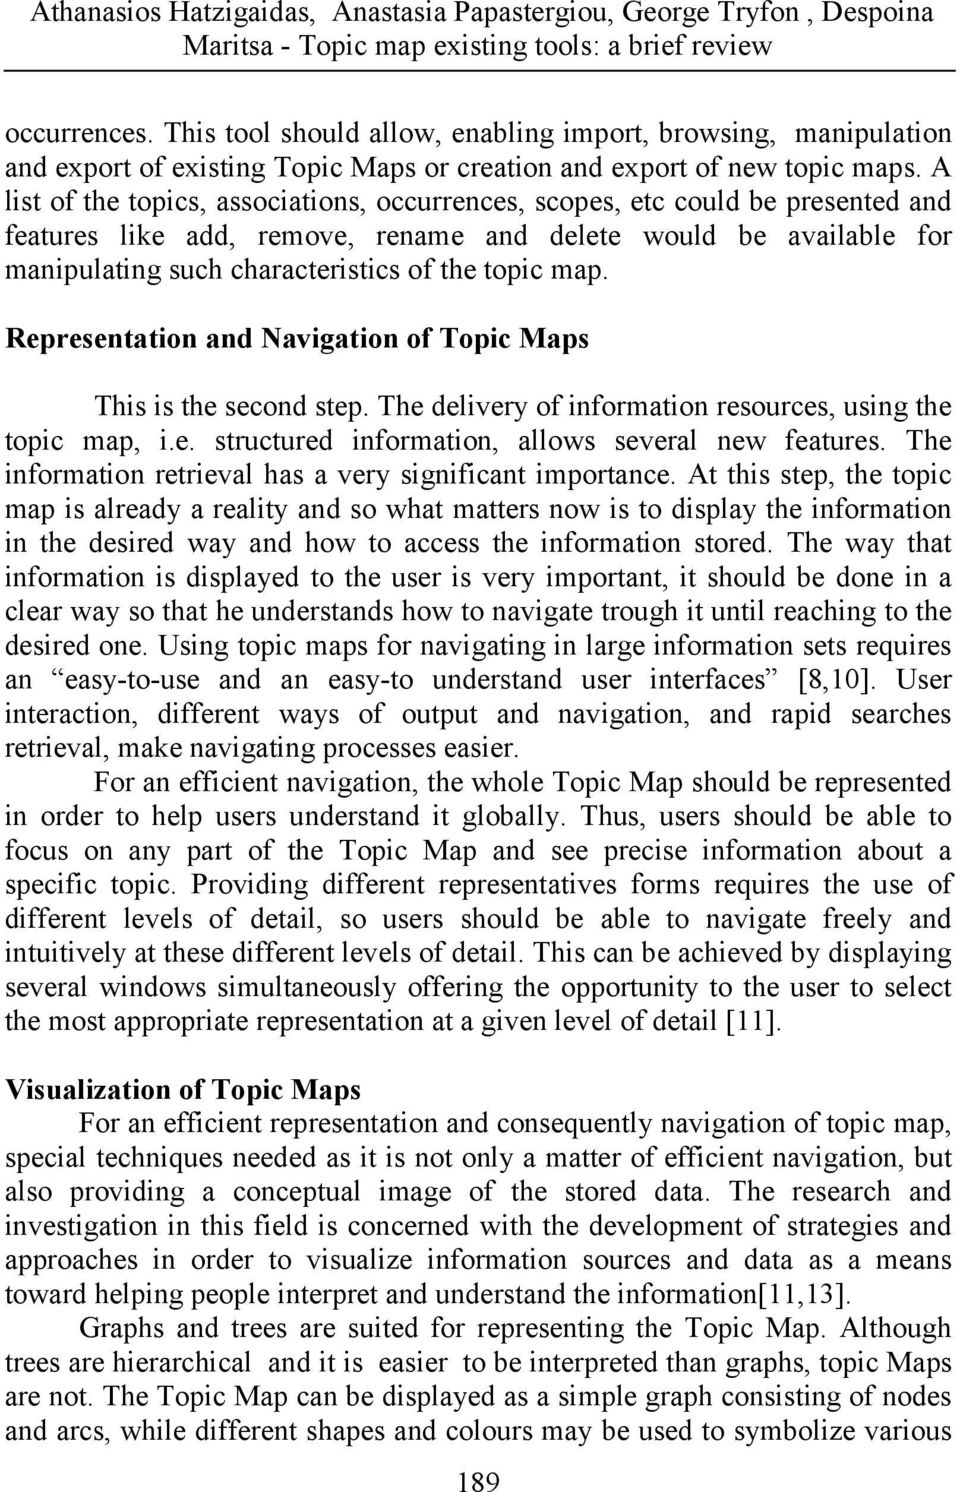 map. Representation and Navigation of Topic Maps This is the second step. The delivery of information resources, using the topic map, i.e. structured information, allows several new features.